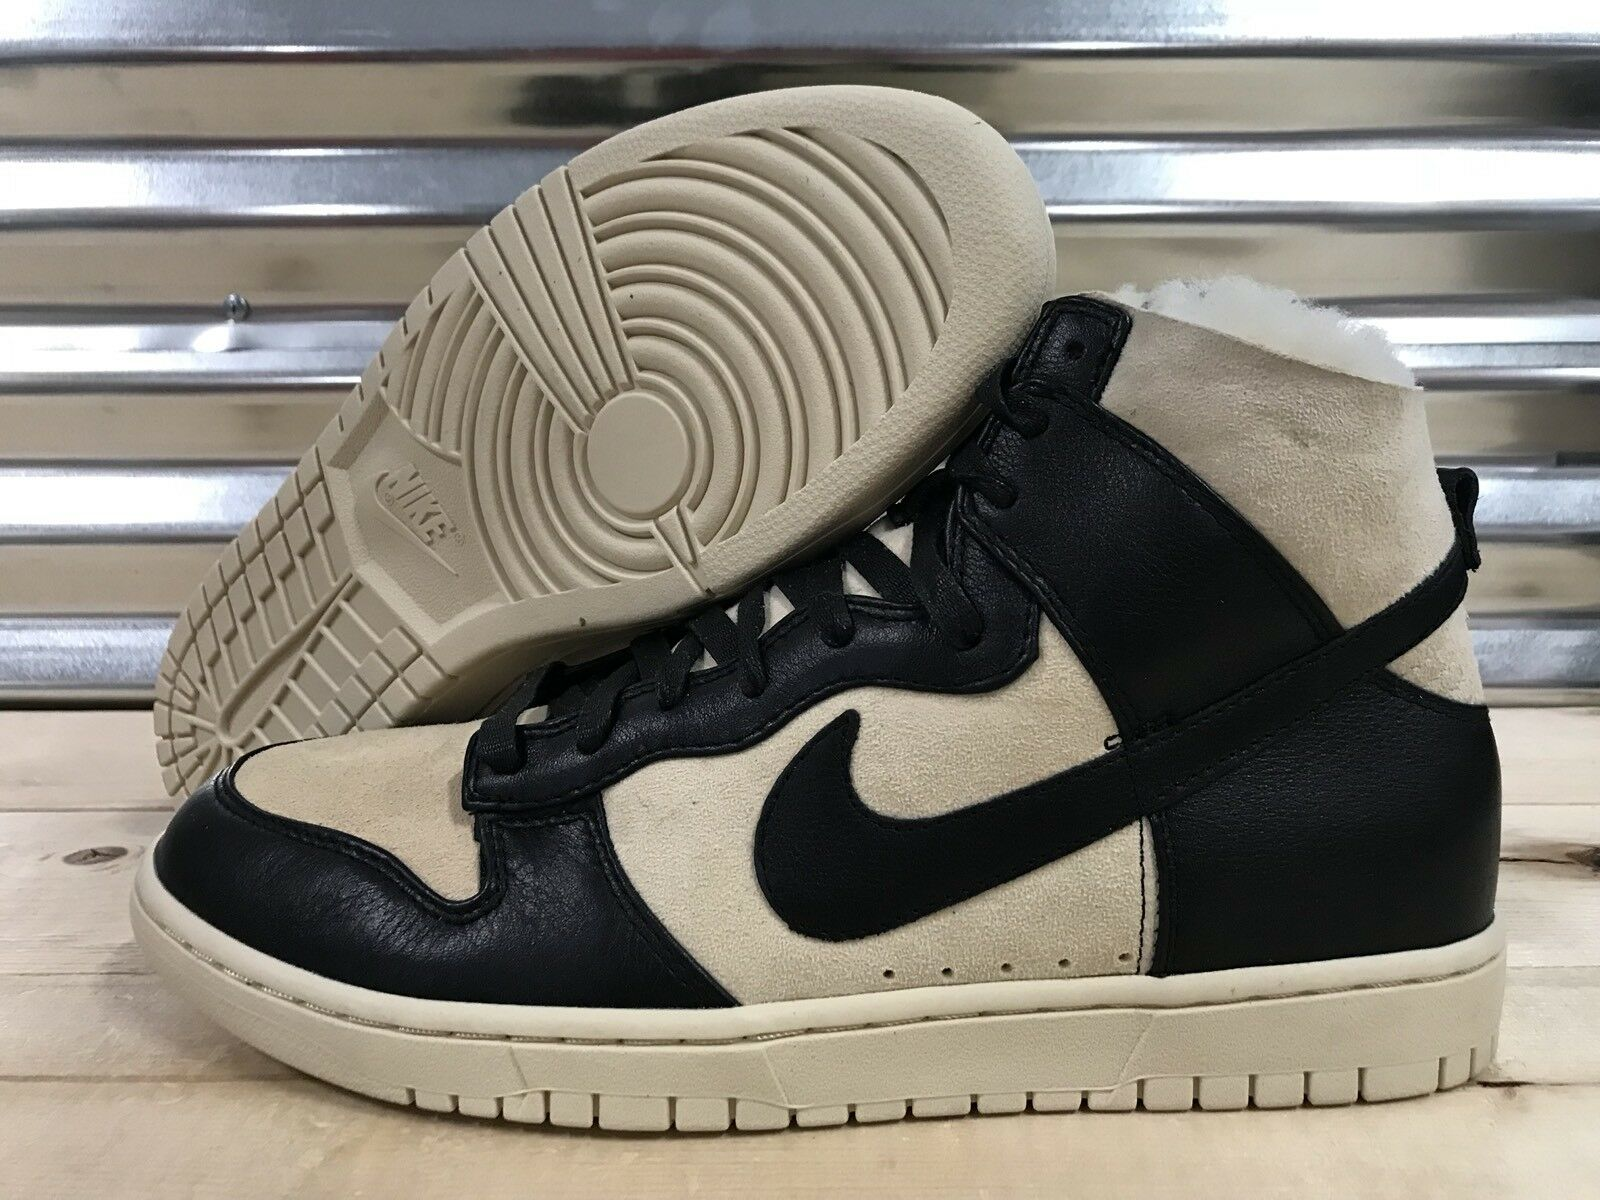 Nike chaussures Dunk Lux SP Sherpa chaussures Nike noir Sail Fur SZ 12 ( 744301-002 ) 776123